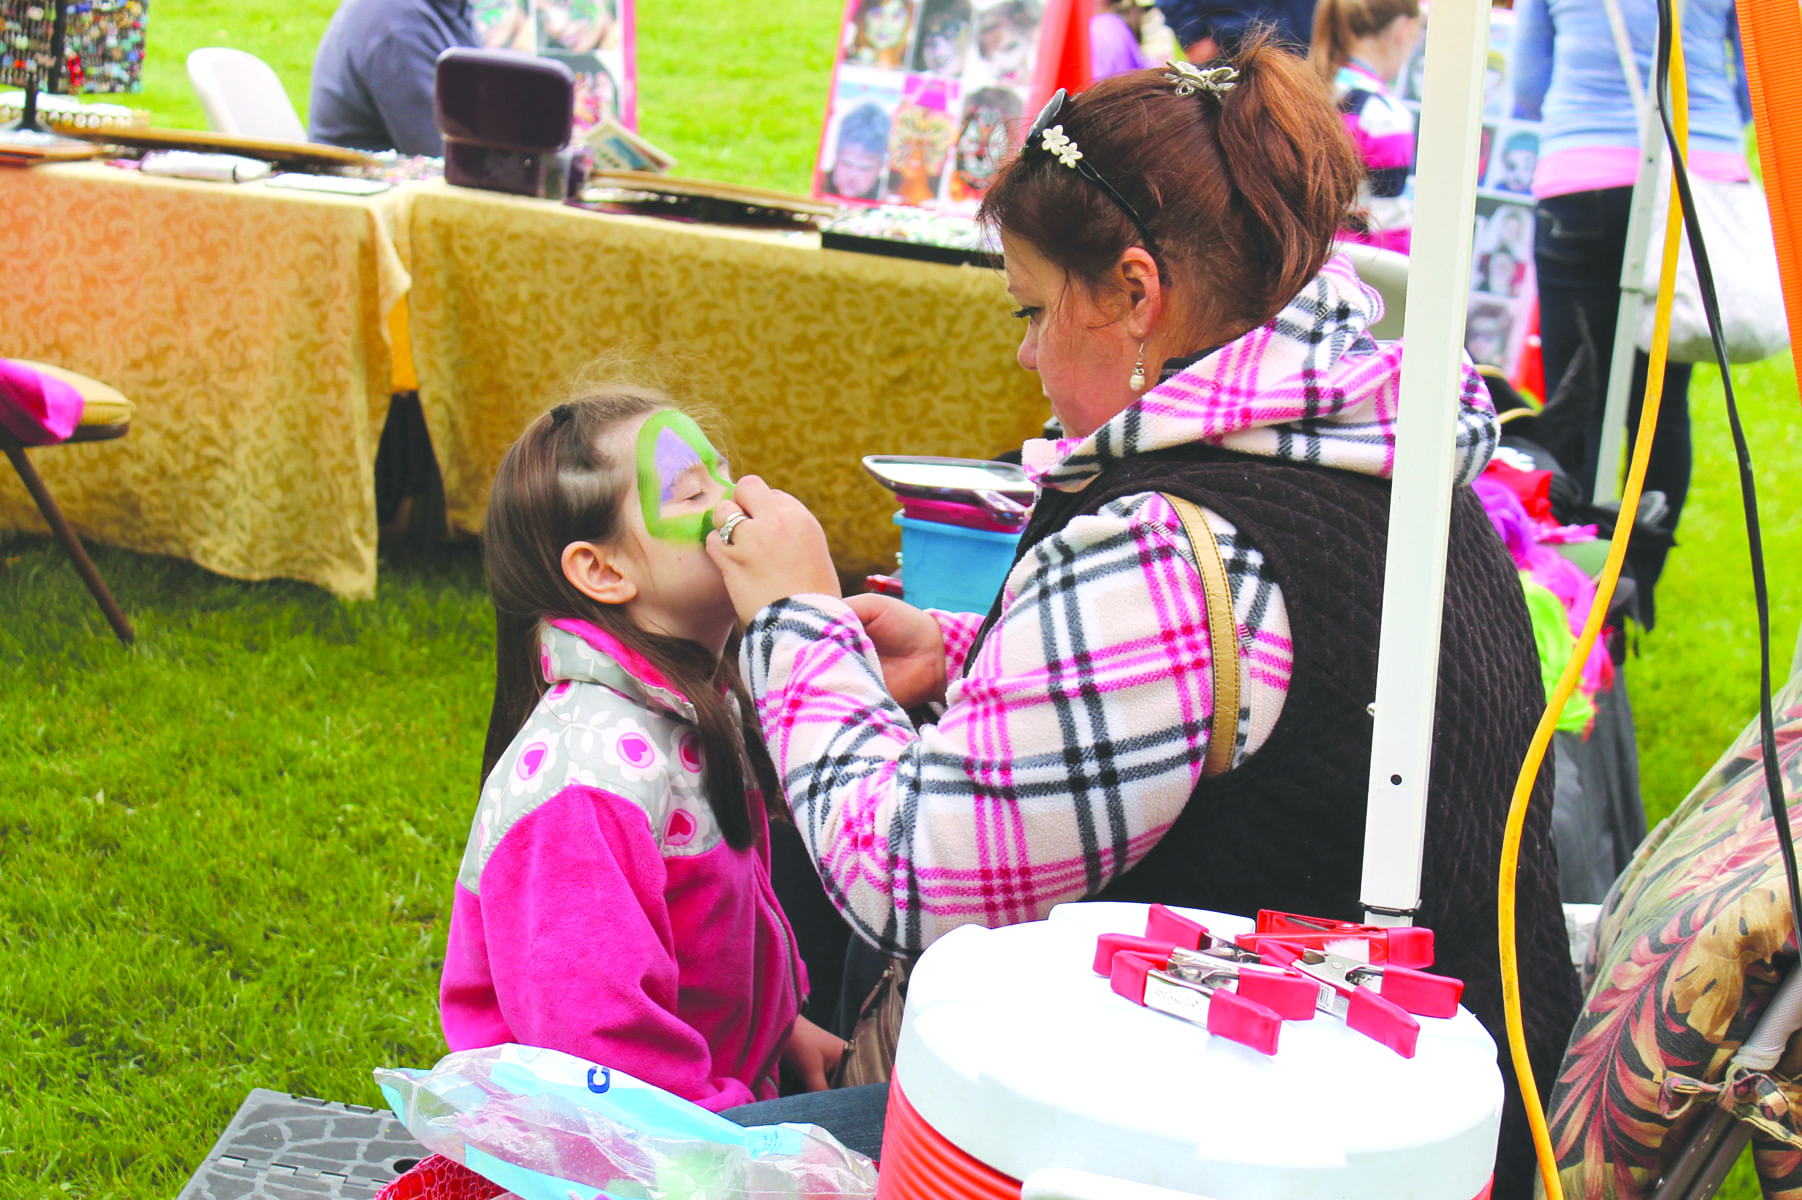 Cicero Community Festival focuses on family